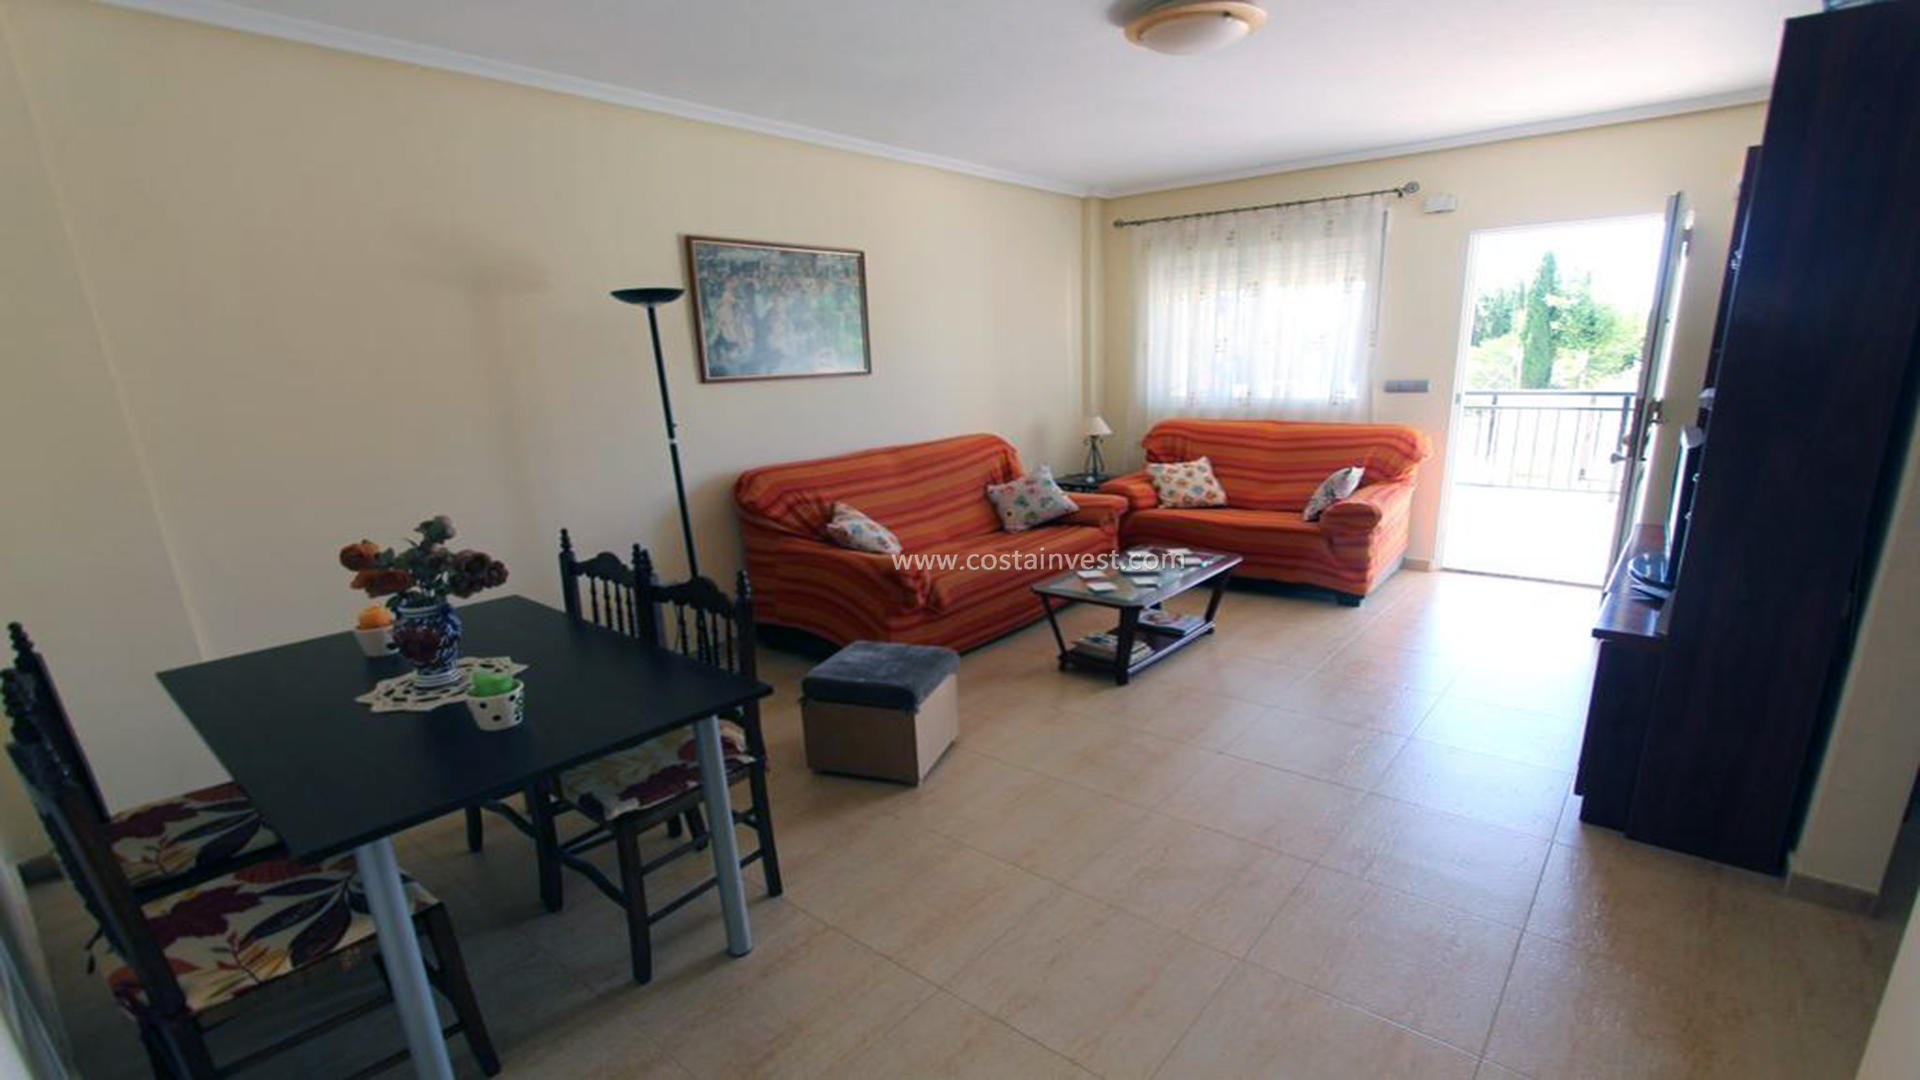 Bungalow -                                       Orihuela Costa -                                       2 chambres -                                       5 occupants